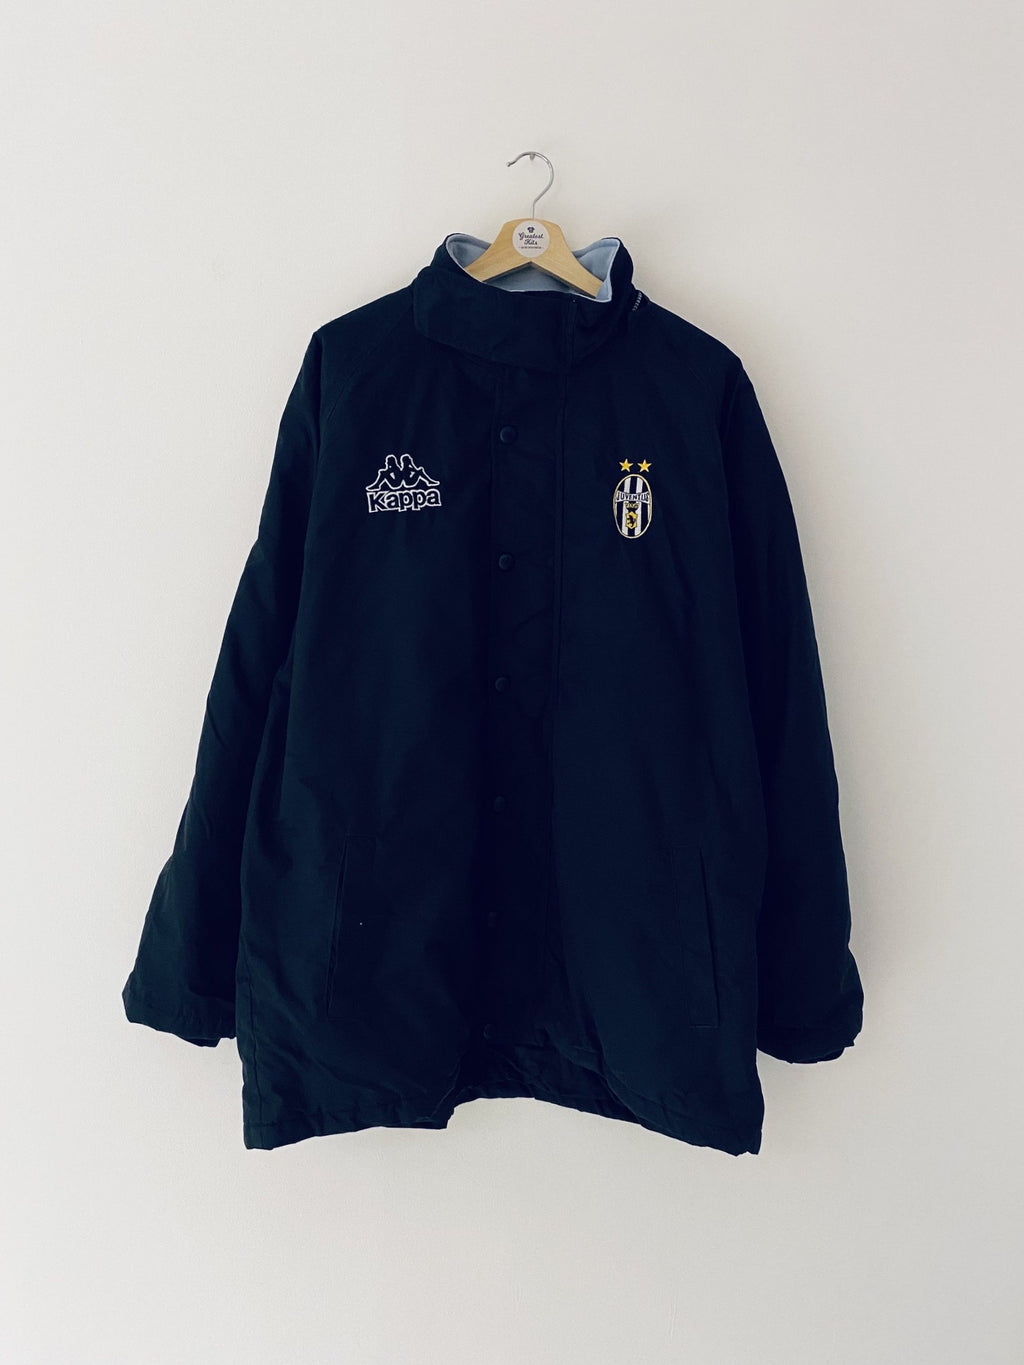 1998/99 Juventus Bench Coat (L) 8/10